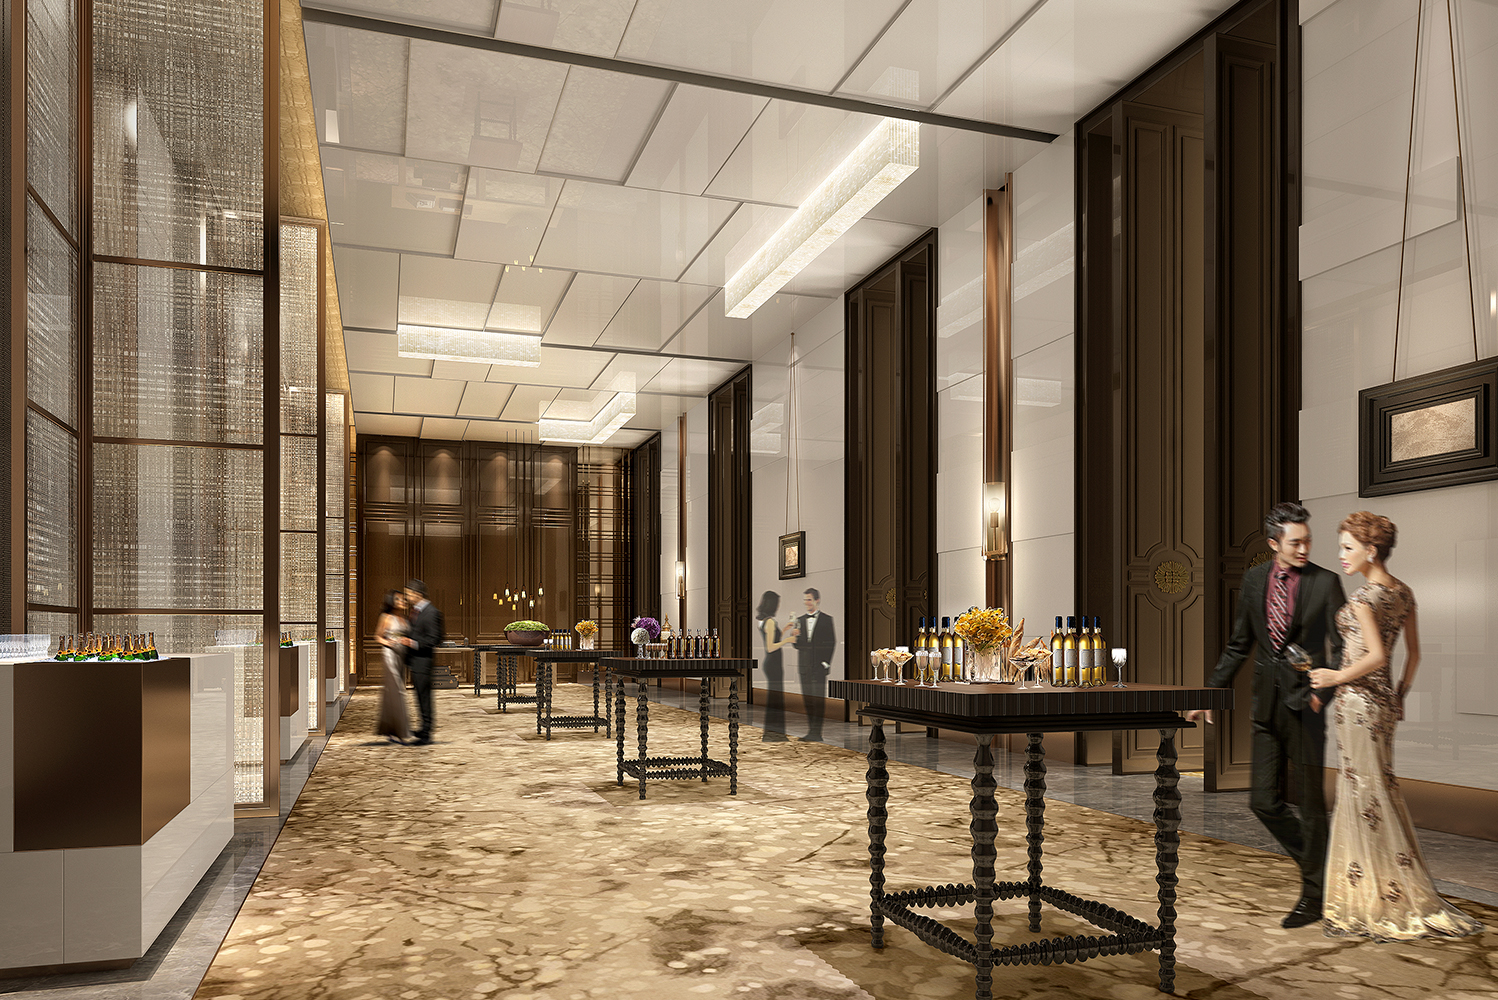 Sheraton Los Angeles San Gabriel Hotel is a 288-room property scheduled to open this fall.